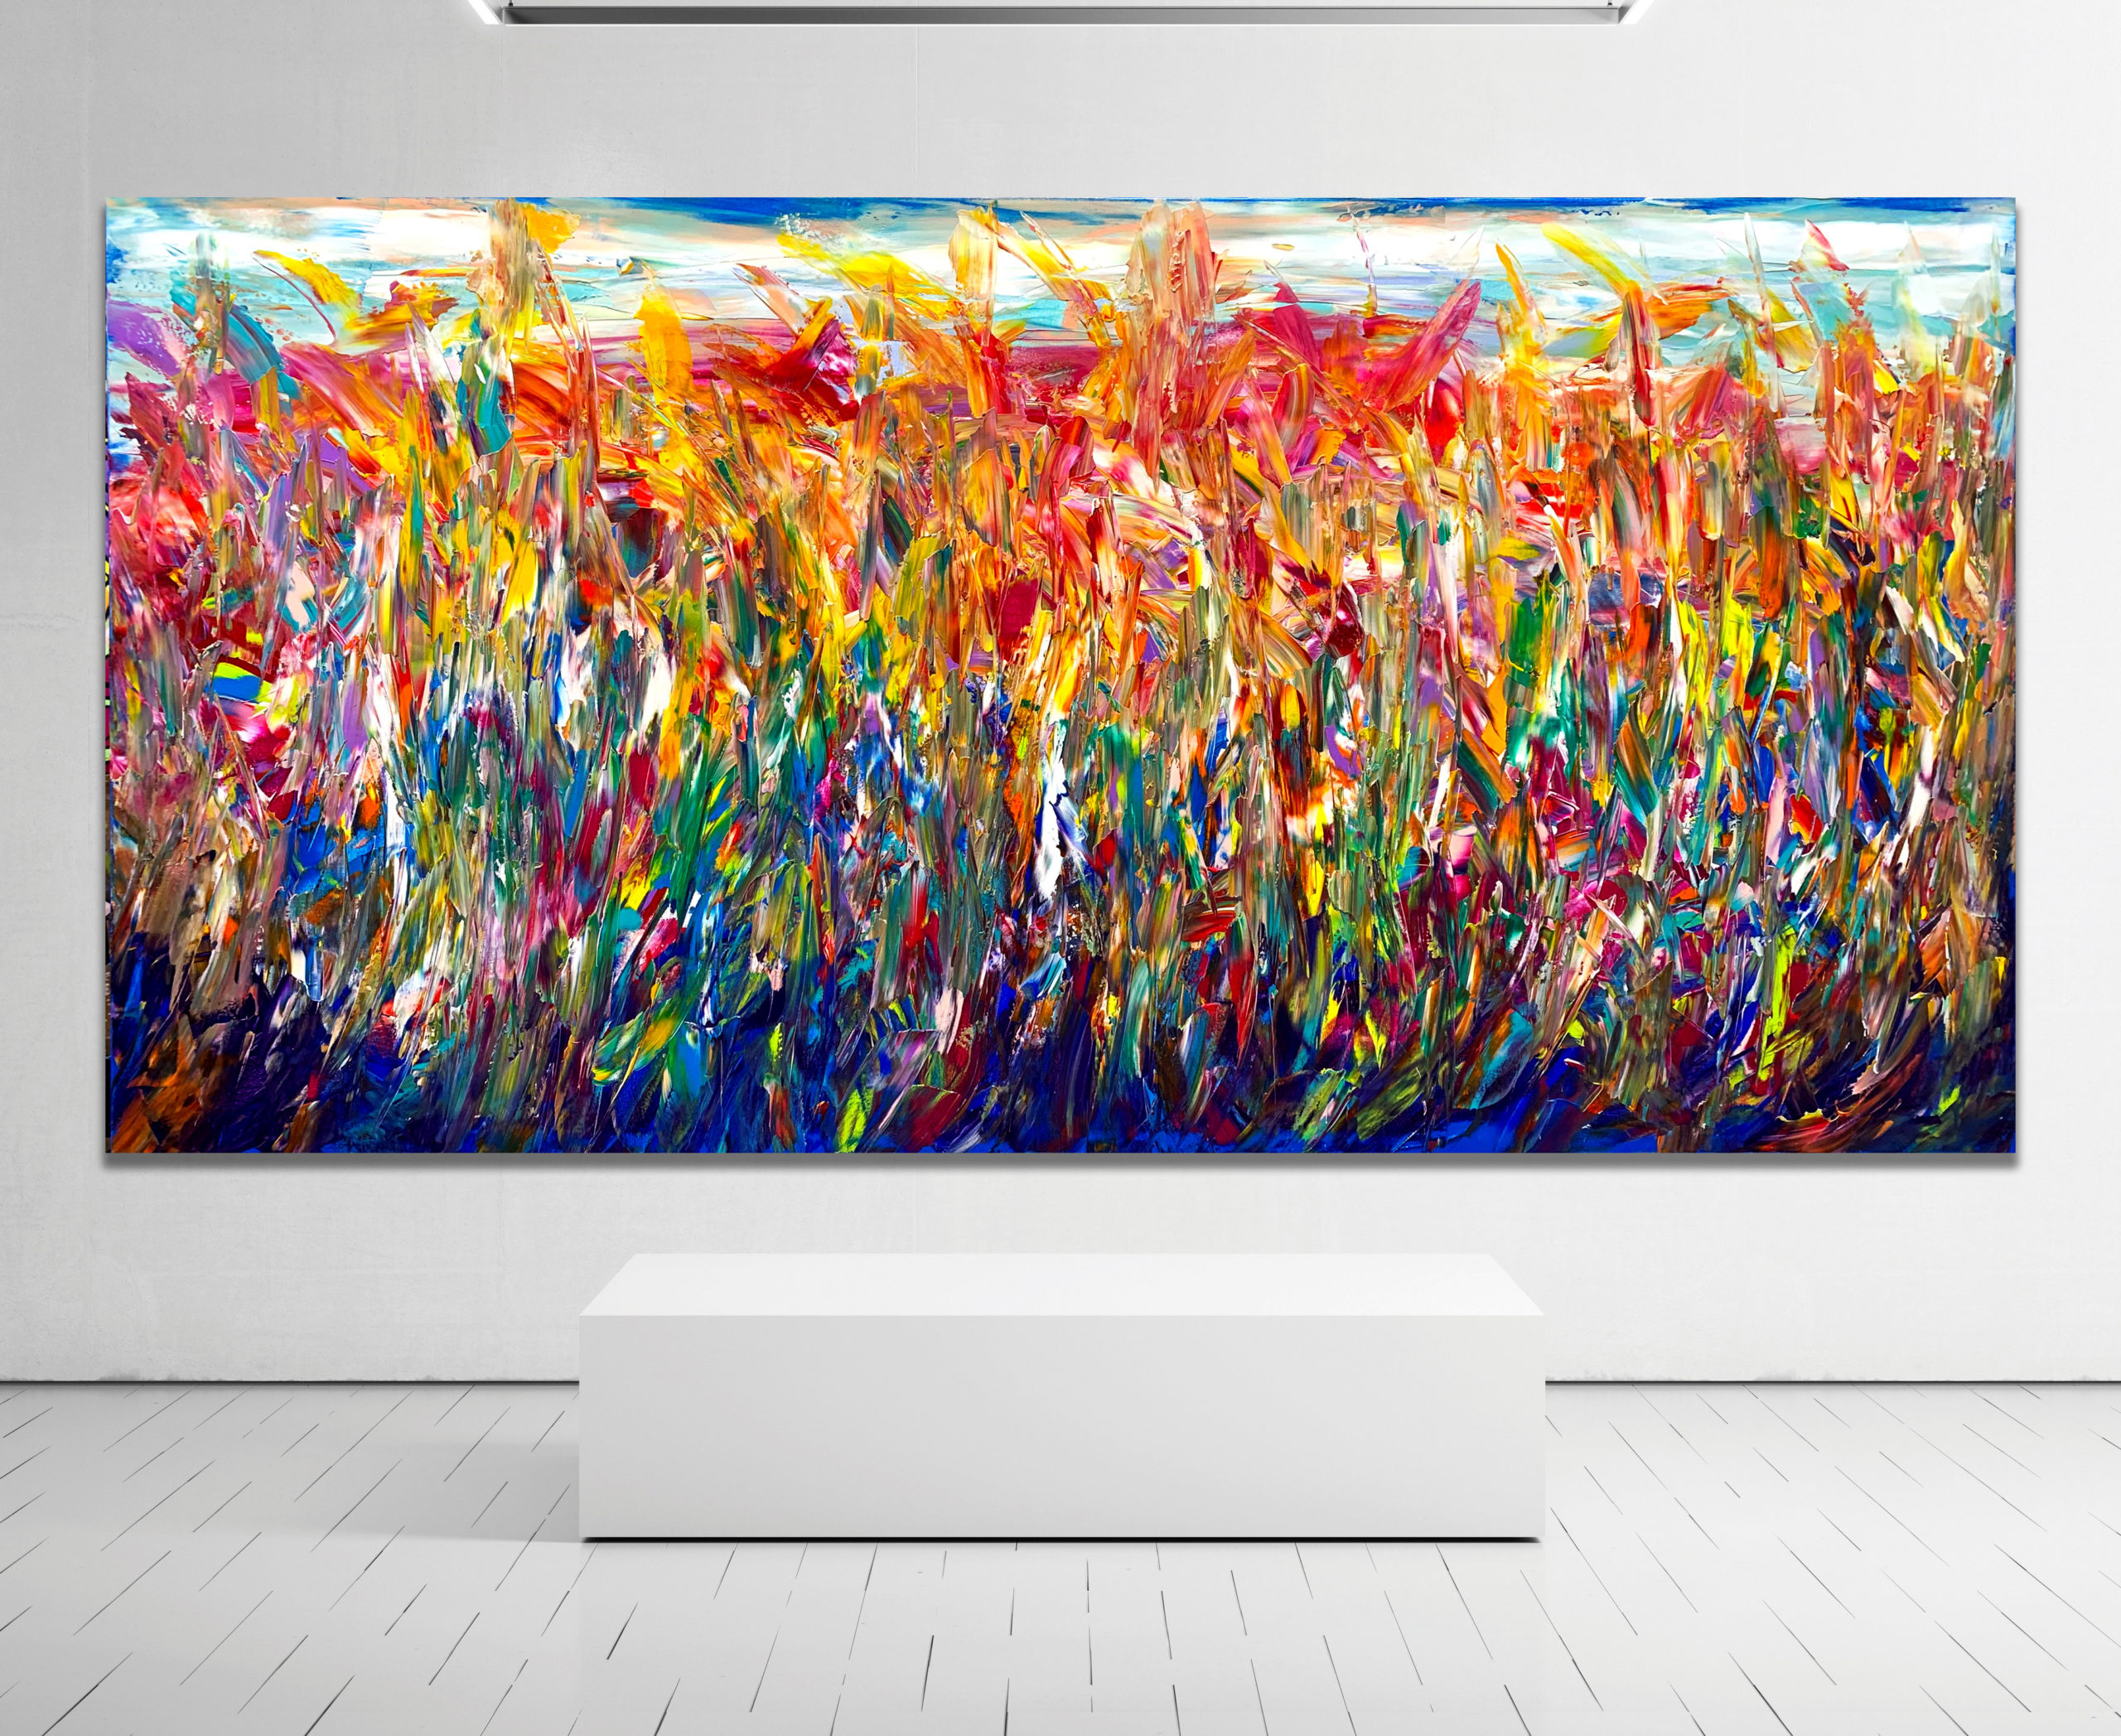 Floral Thicket Fire - Abstract Expressionism by Estelle Asmodelle